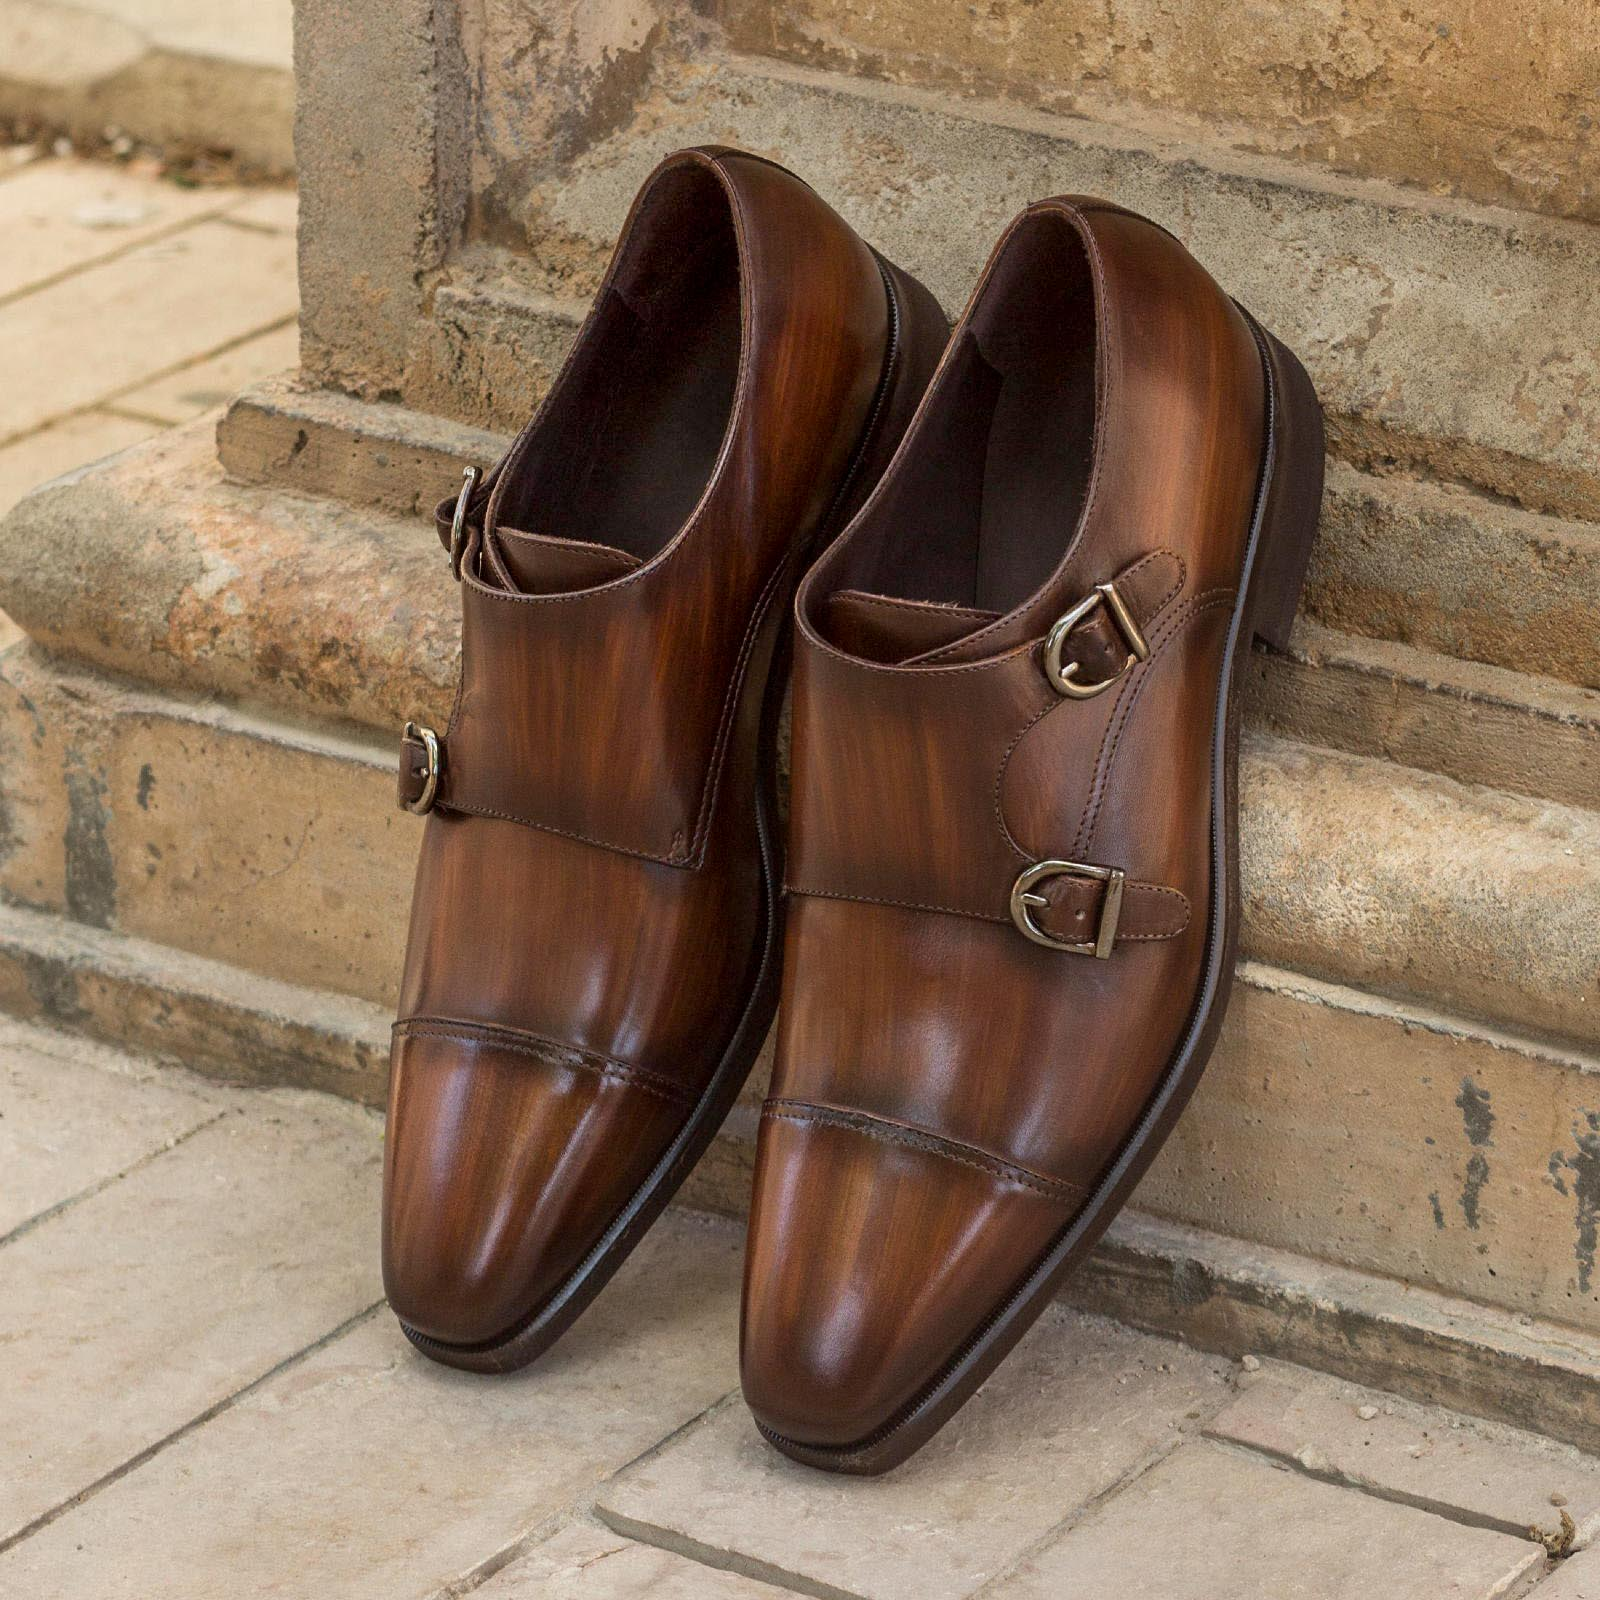 Double monk brown crust patina : 330€